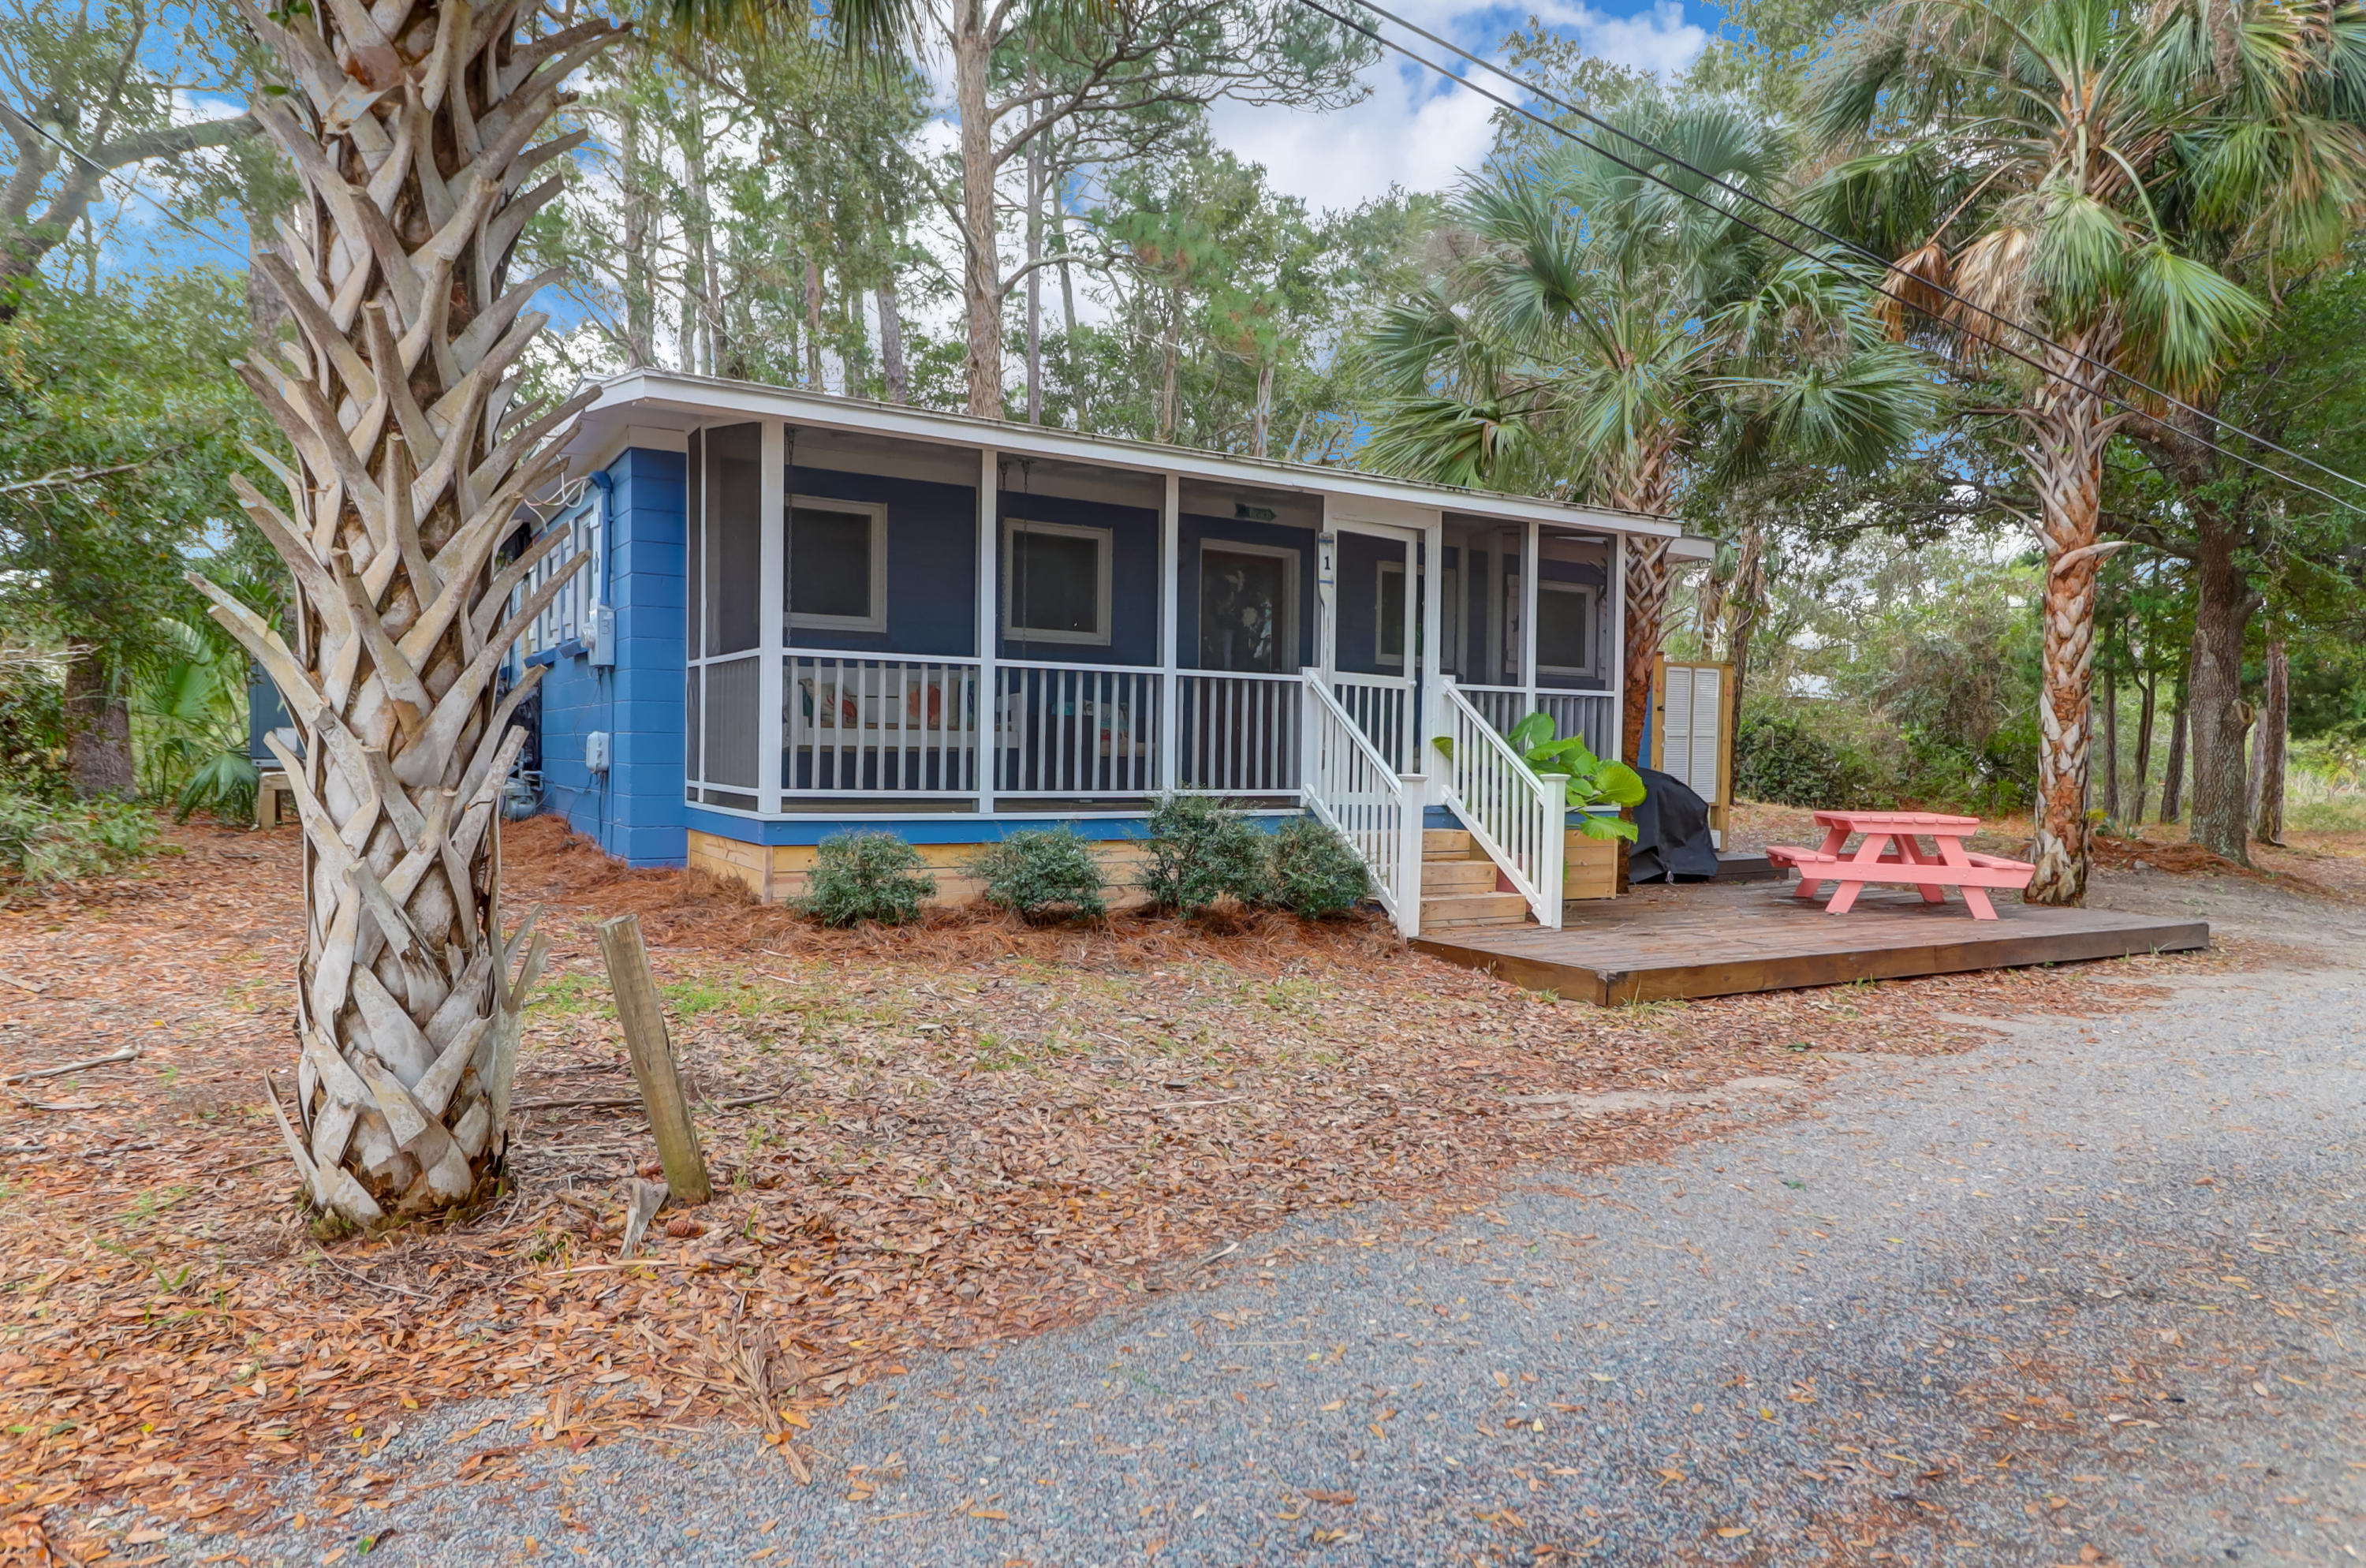 1 Red Sunset NULL Folly Beach $664,900.00